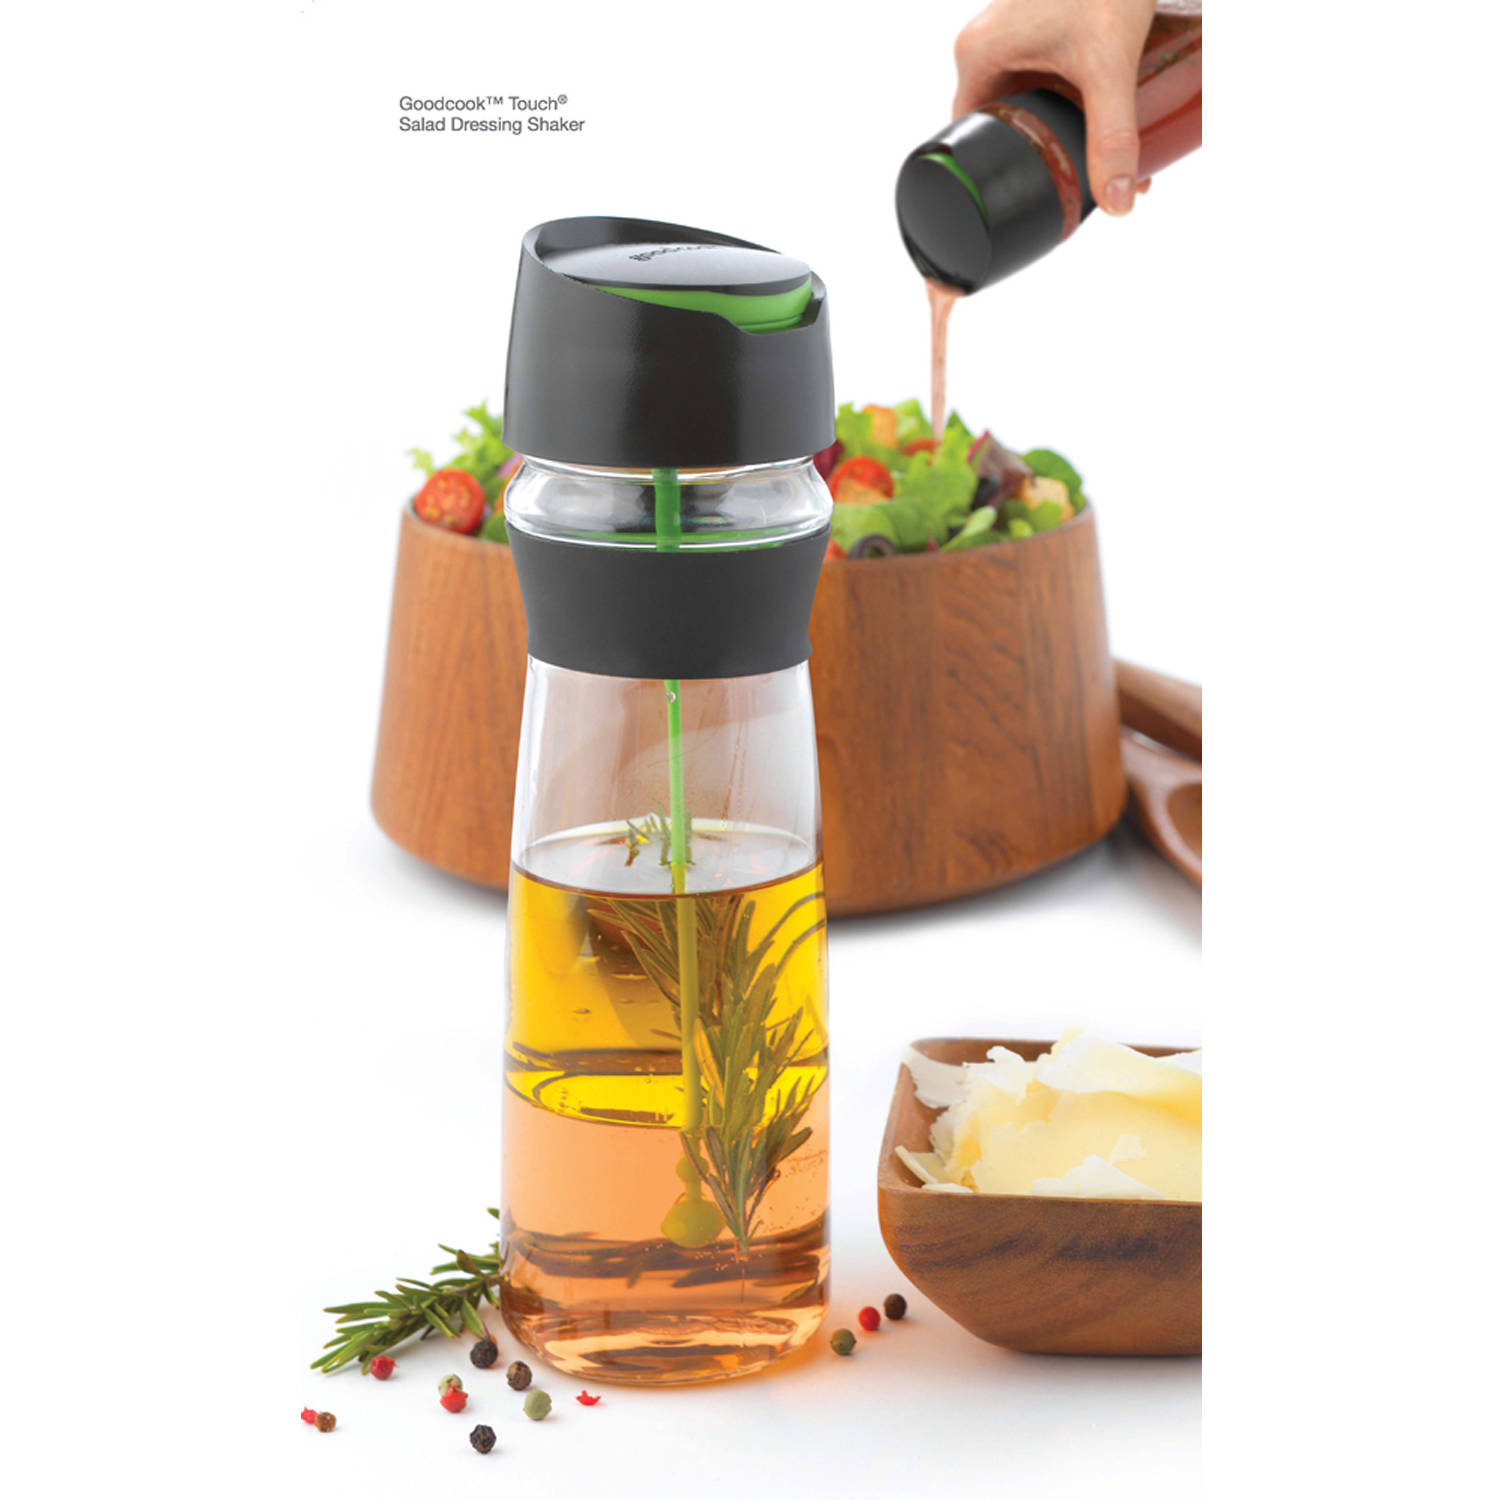 Good Cook Salad Dressing Shaker